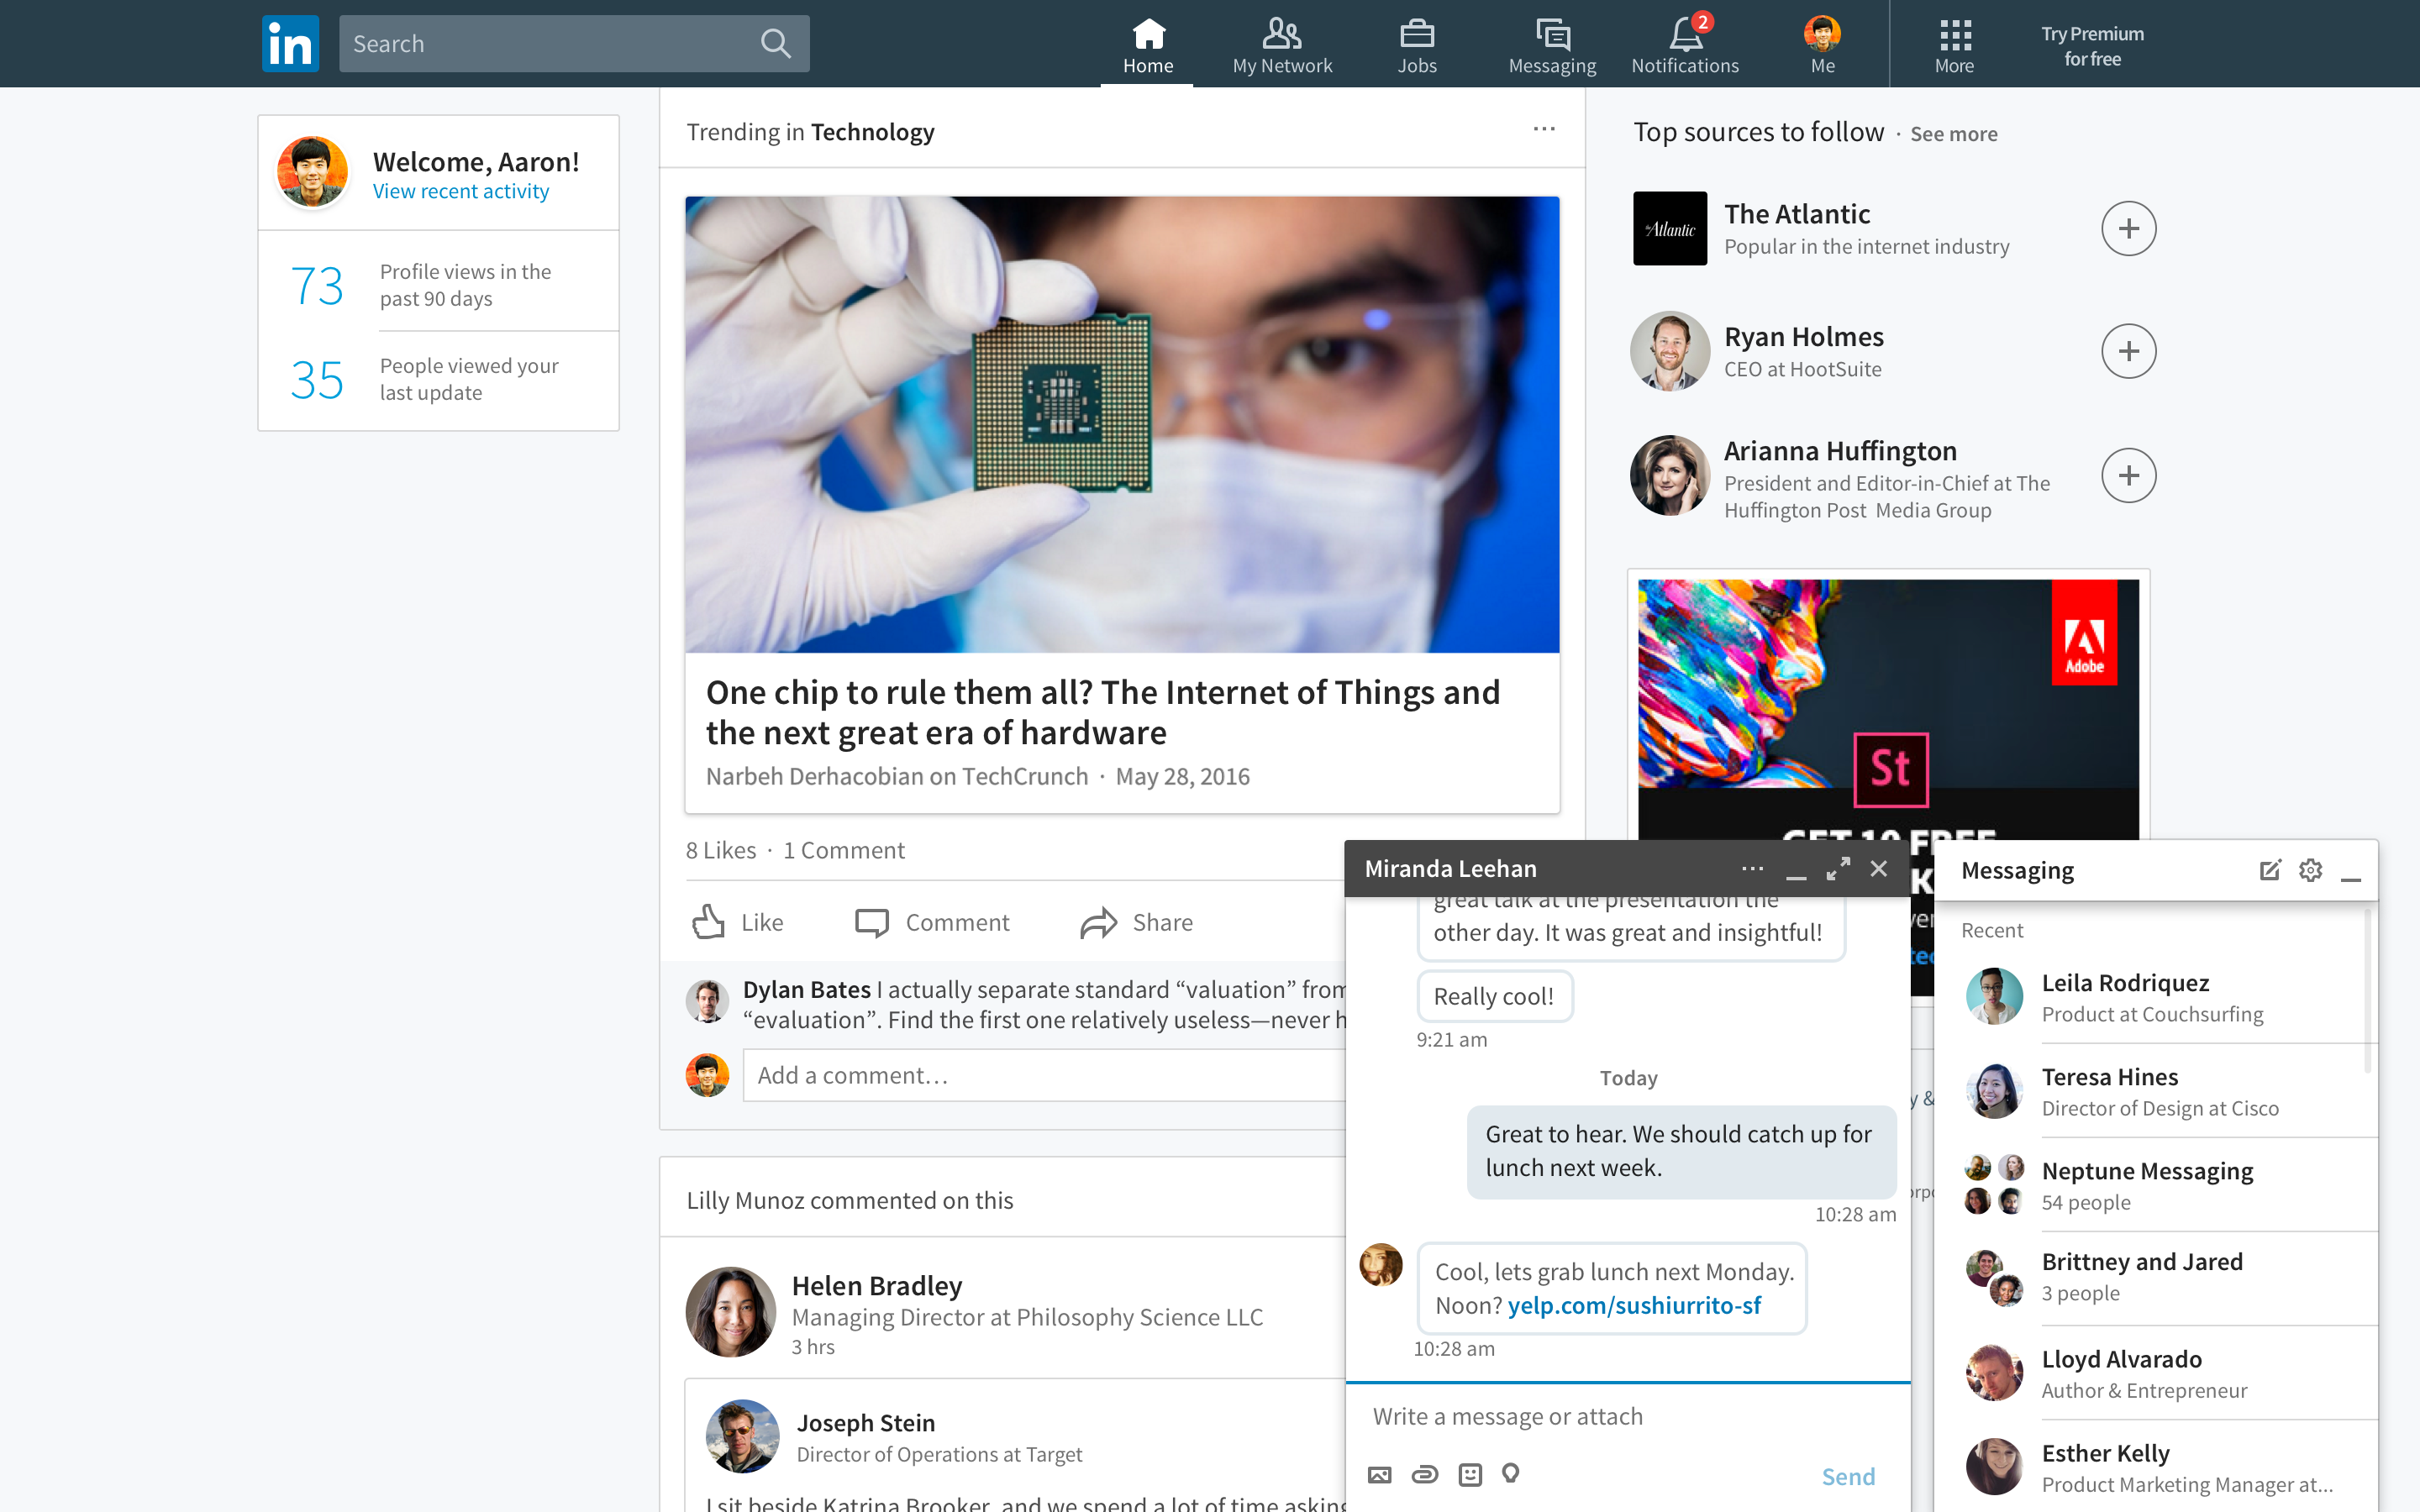 LinkedIn's redesign changes everything for the better